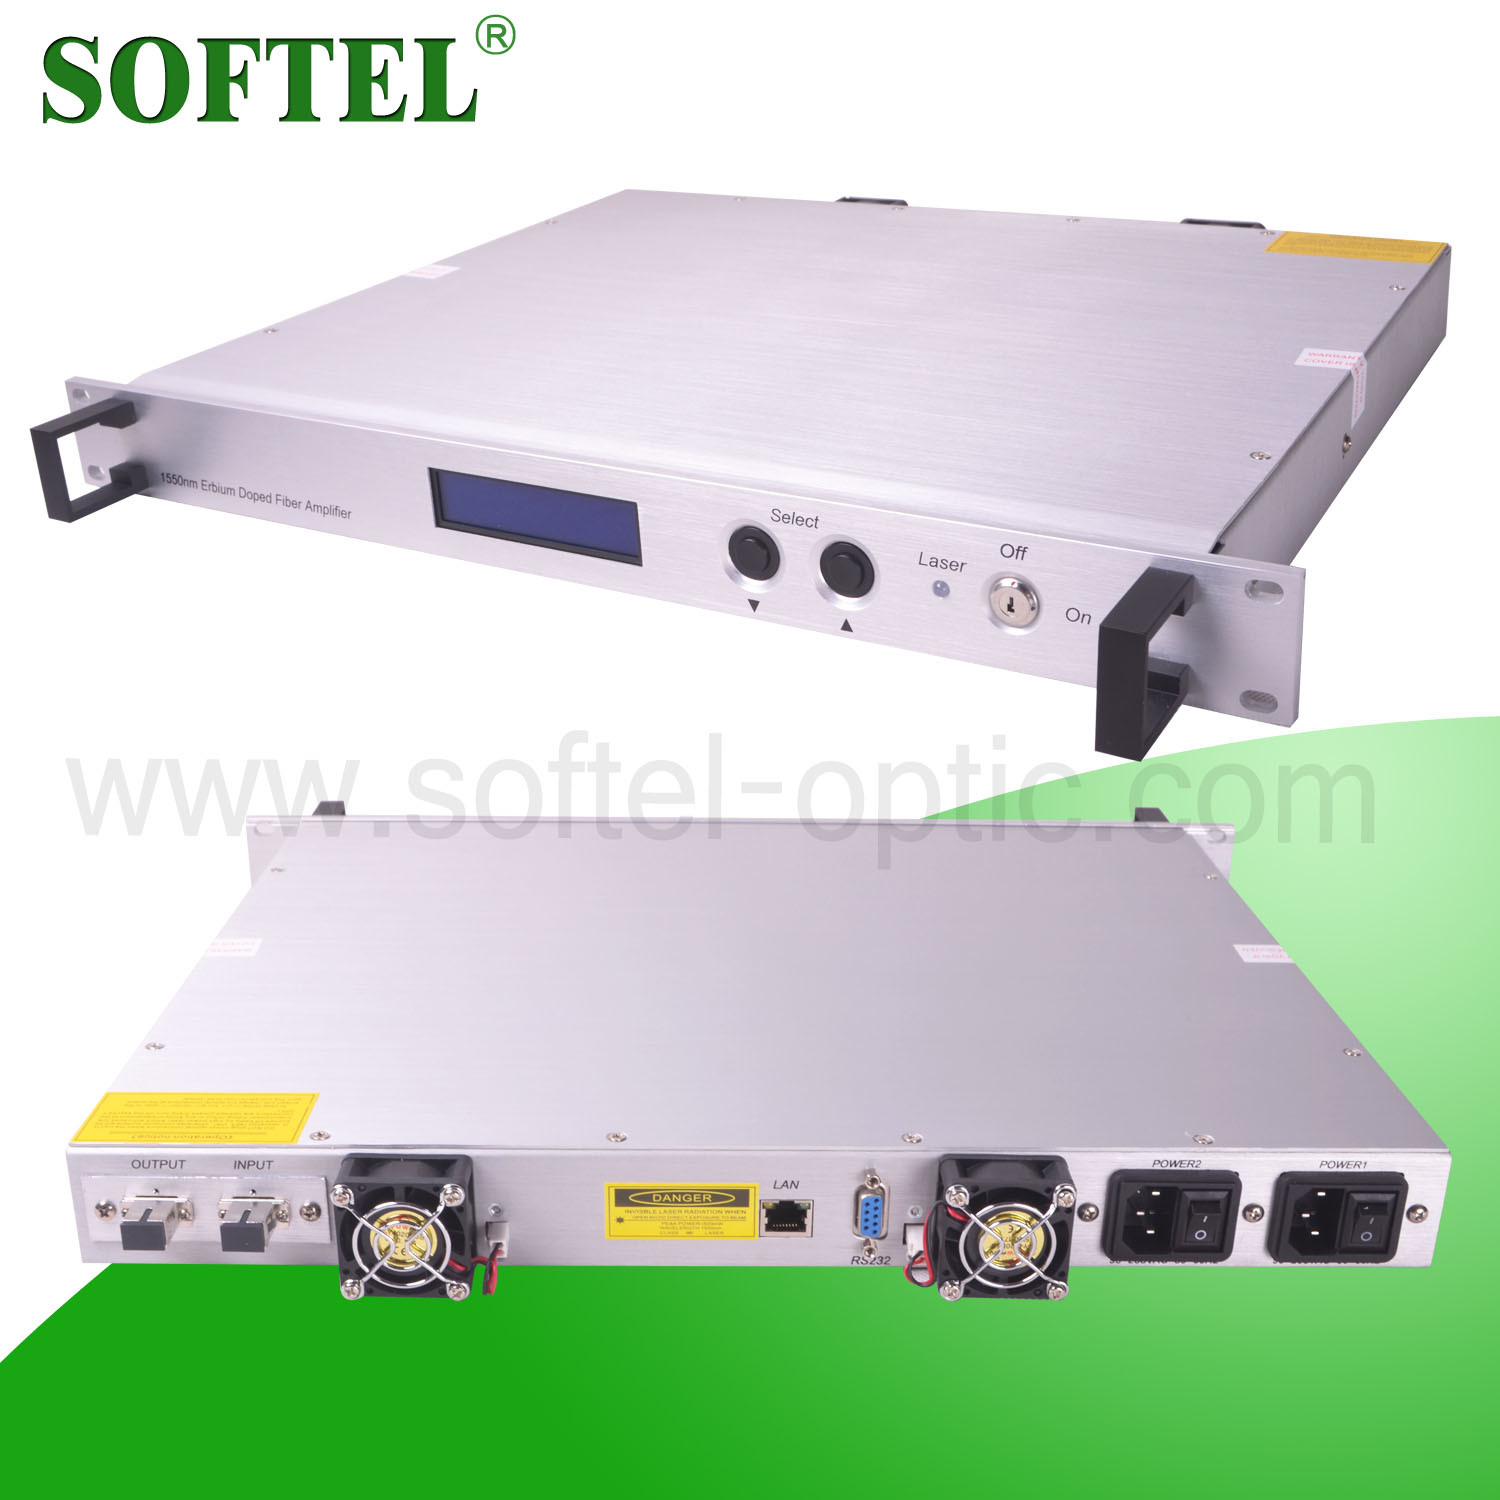 Softel 1550nm Erbium-Doped Optical Fiber Amplifier/15dB CATV EDFA Fiber Optical Signal Amplifier